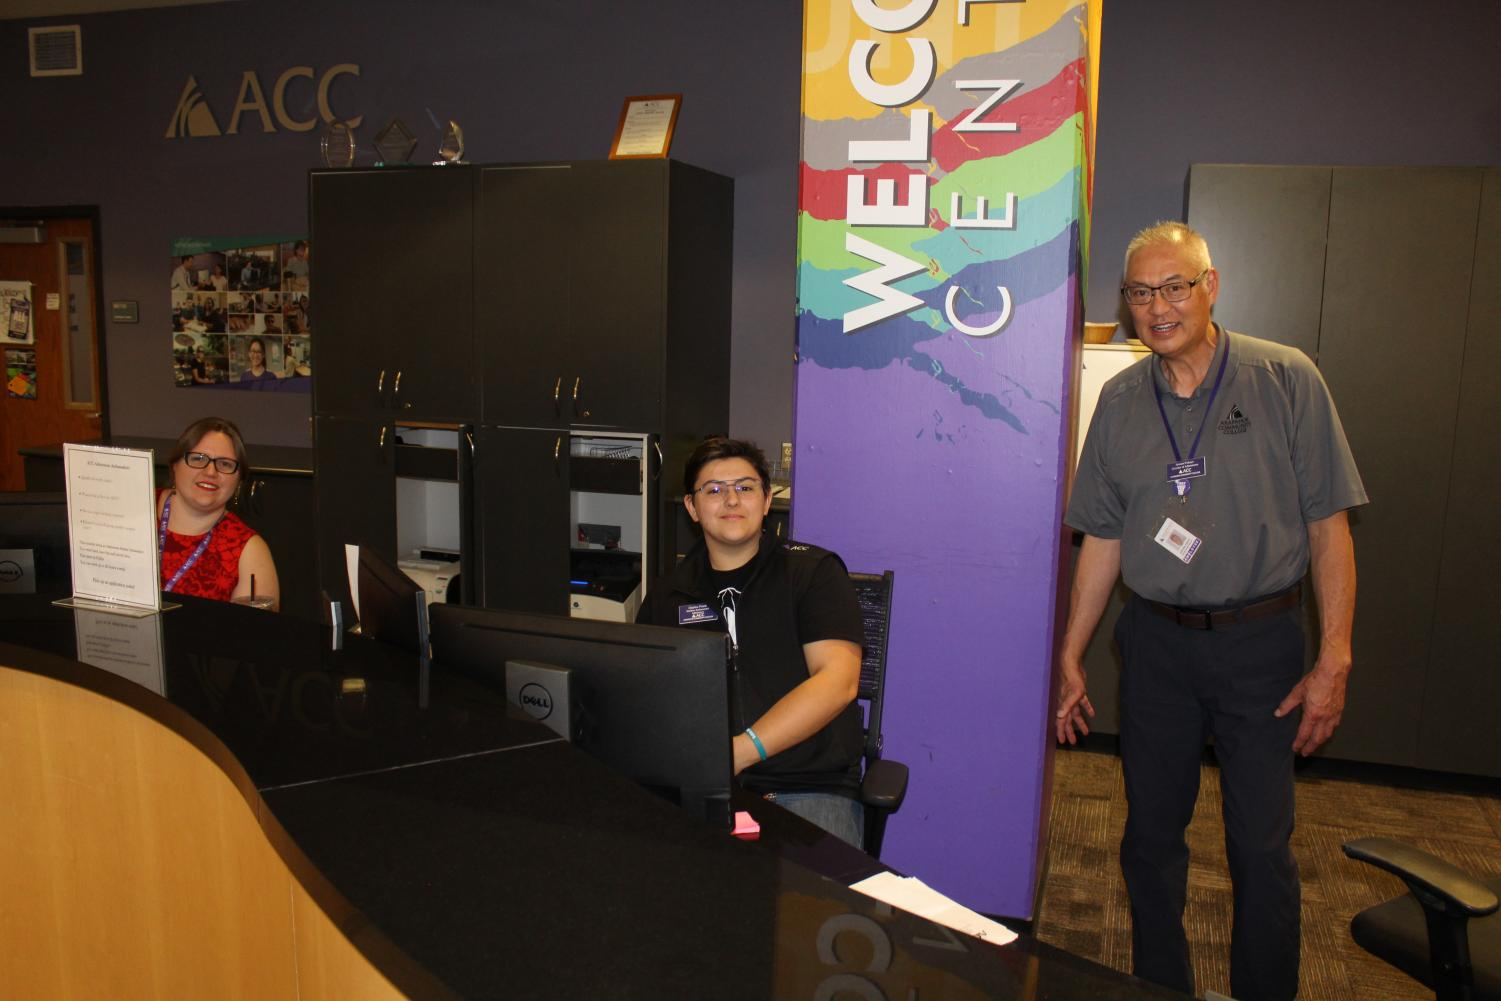 Jennifer Sheldon (left) and Charles Frank (middle) and Howard Fukaye (right, not featured in this article) working behind the ACC Welcome Center Desk in the midst of their many daily duties. Image via Jaymes Grundmann